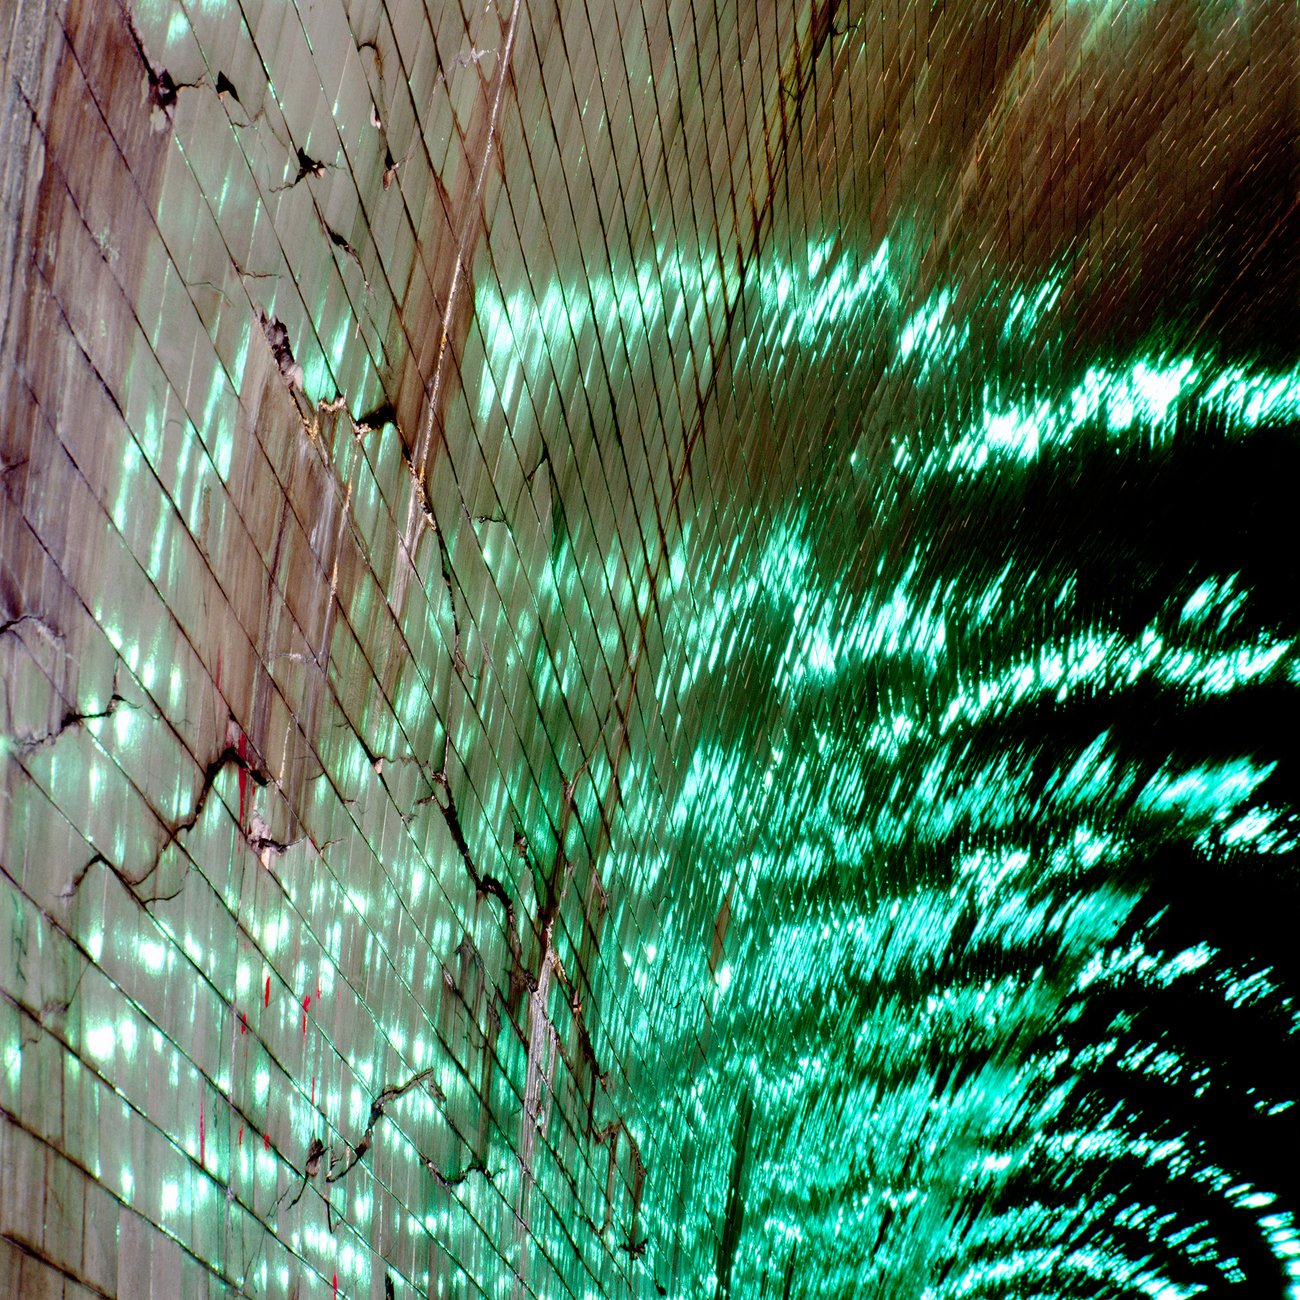 Reflection of water and green lights on the ceiling of a tunnel.